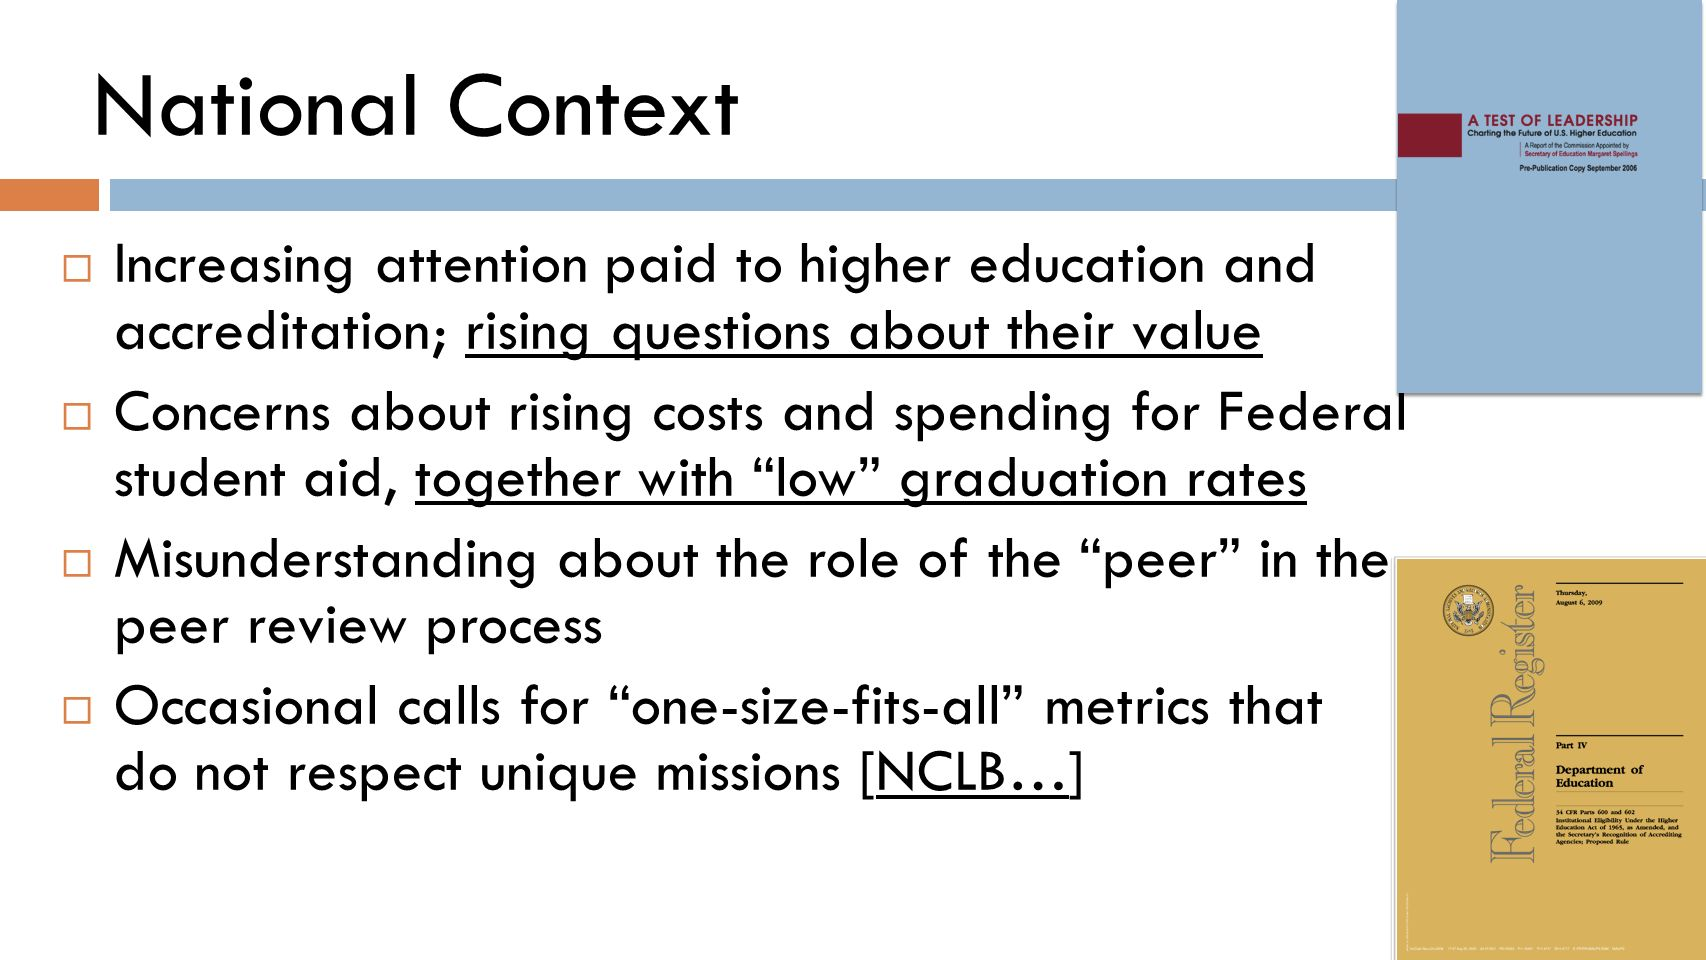 National ContextIncreasing attention paid to higher education and accreditation; rising questions about their value.